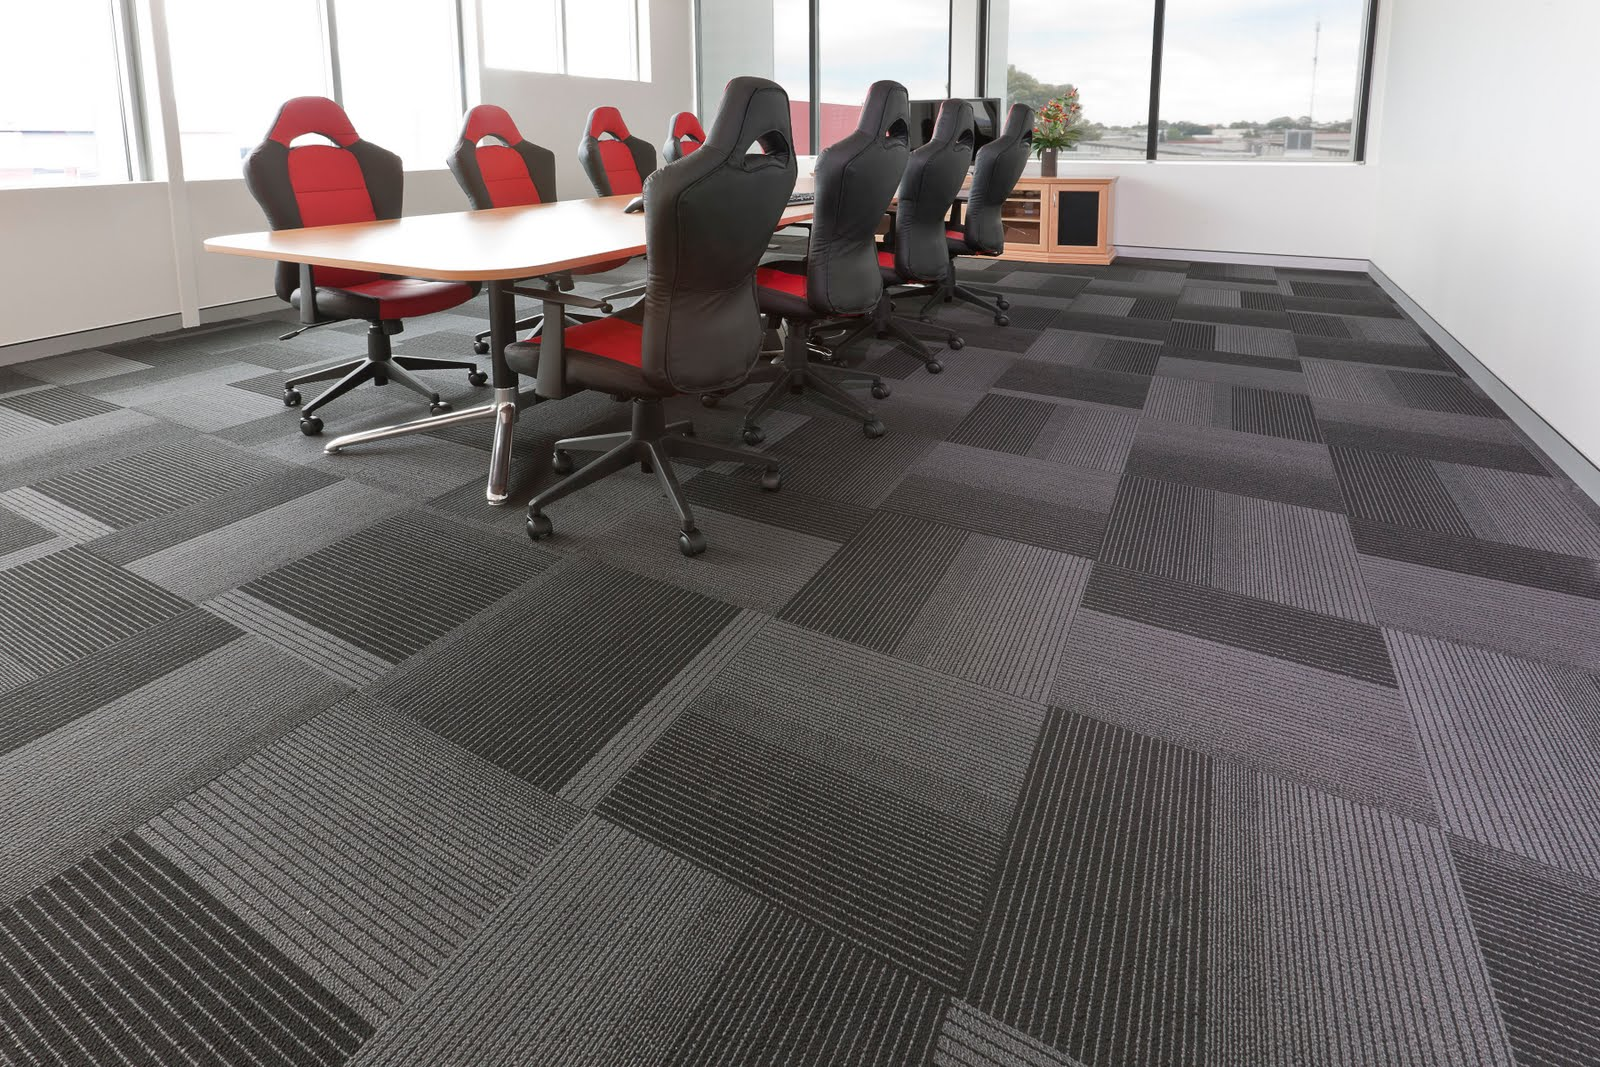 Suppliers of Carpet Tiles in Mumbai  Known for supplying and trading, we are offering the quality-oriented range of Designer Carpet Tiles. These carpet tiles give an astonishing look to your floor.   Features:   Beautiful colors and designs  1st grade nylon  Professional applicators  Fire retardant  Tear resistant